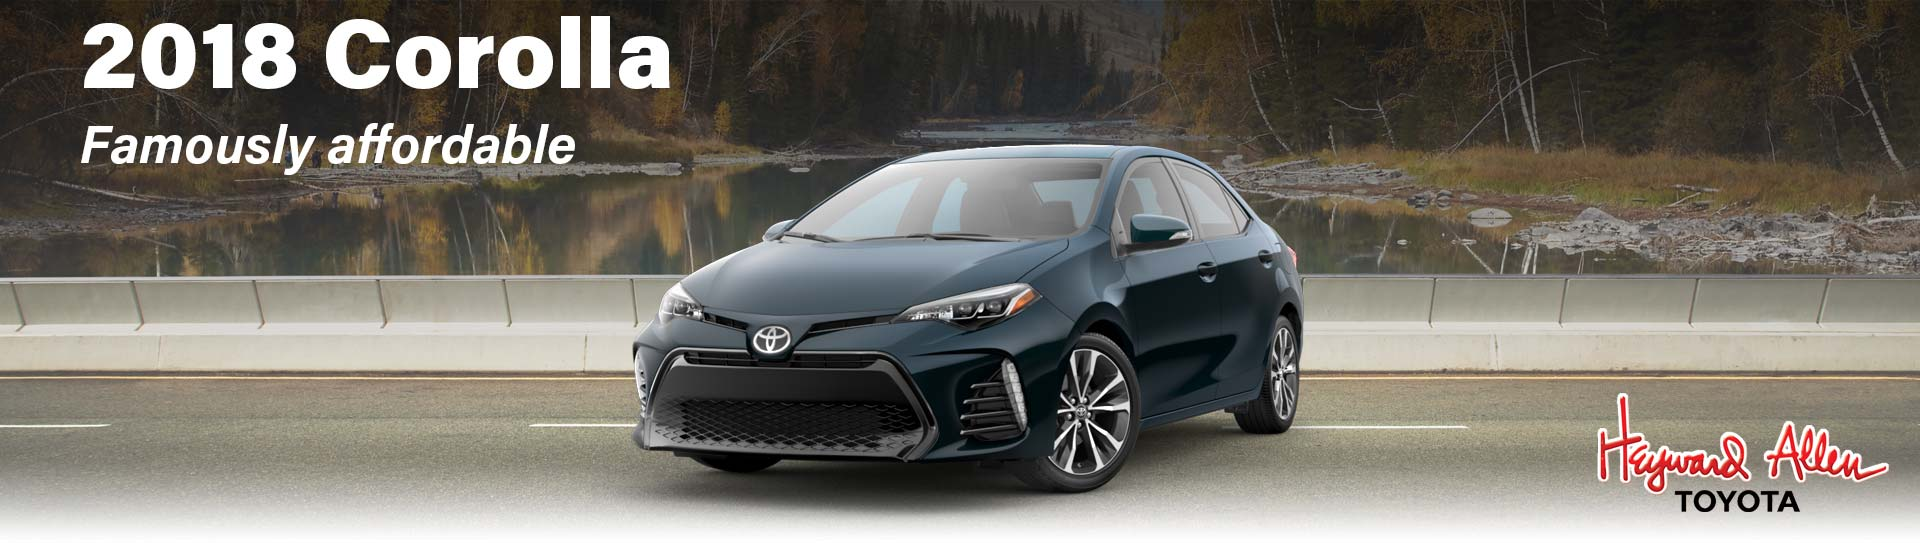 2018 Toyota Corolla comparison